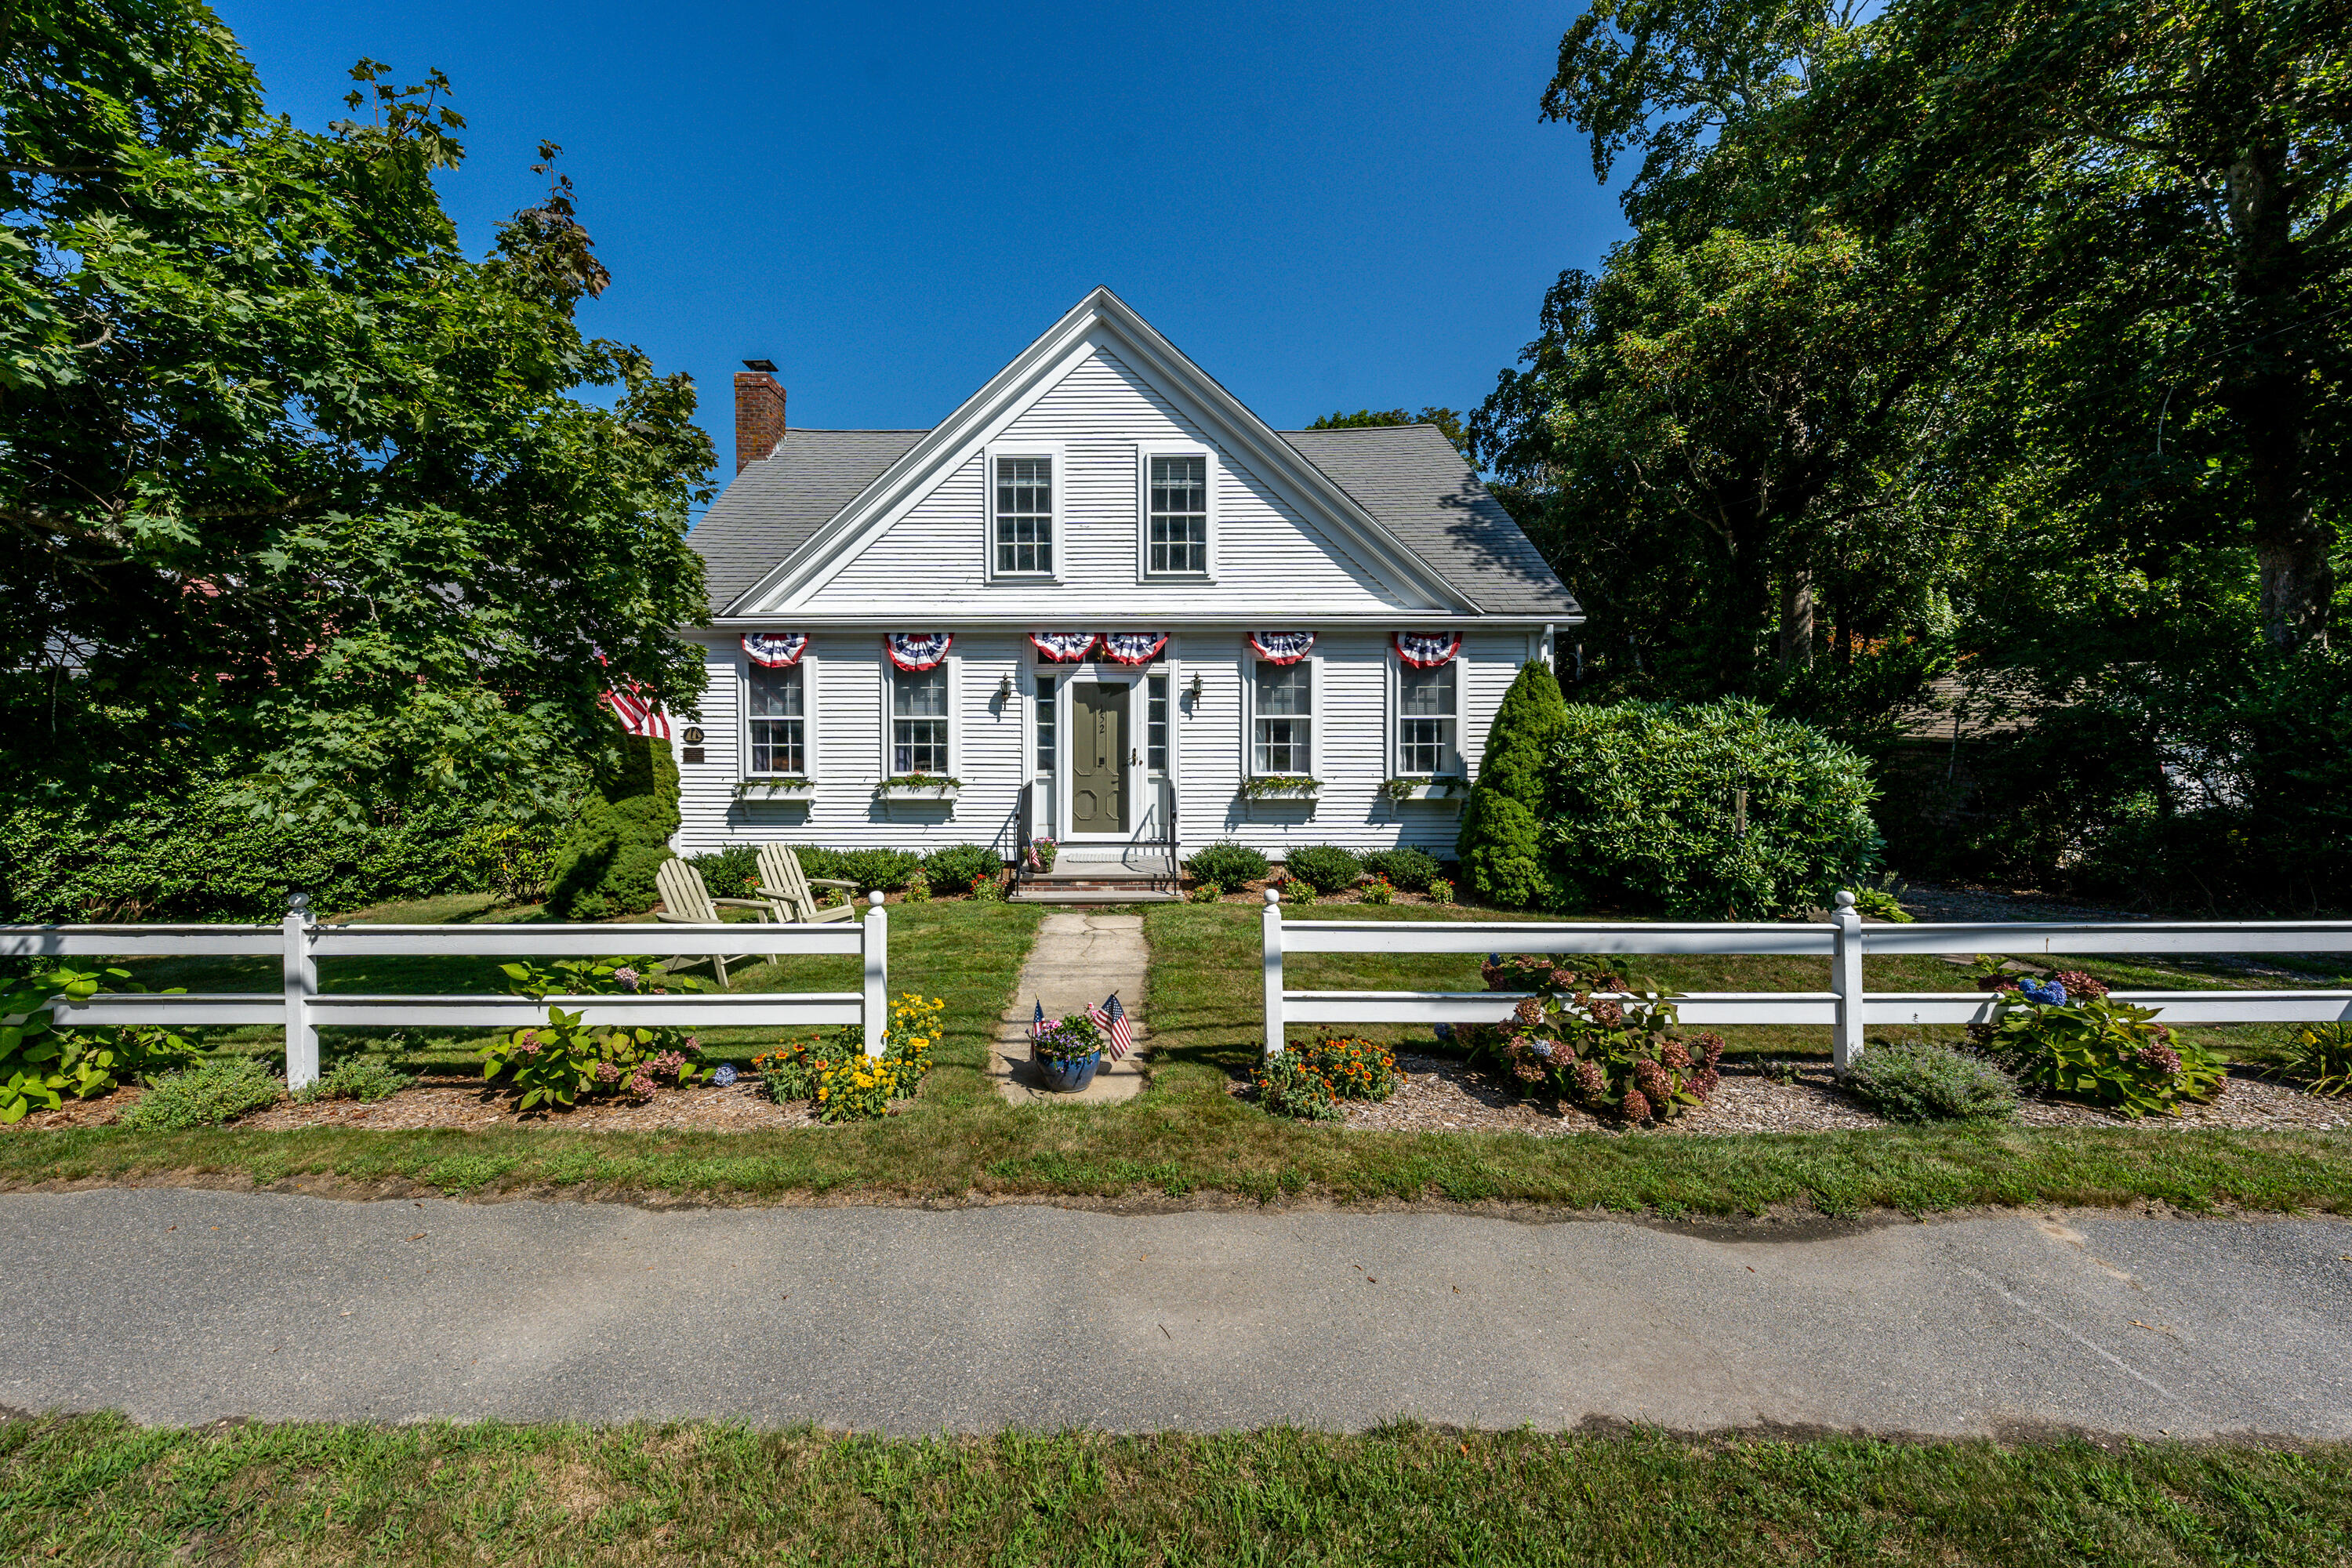 152 Route 6A (Main st) Yarmouth Port MA, 02675 details